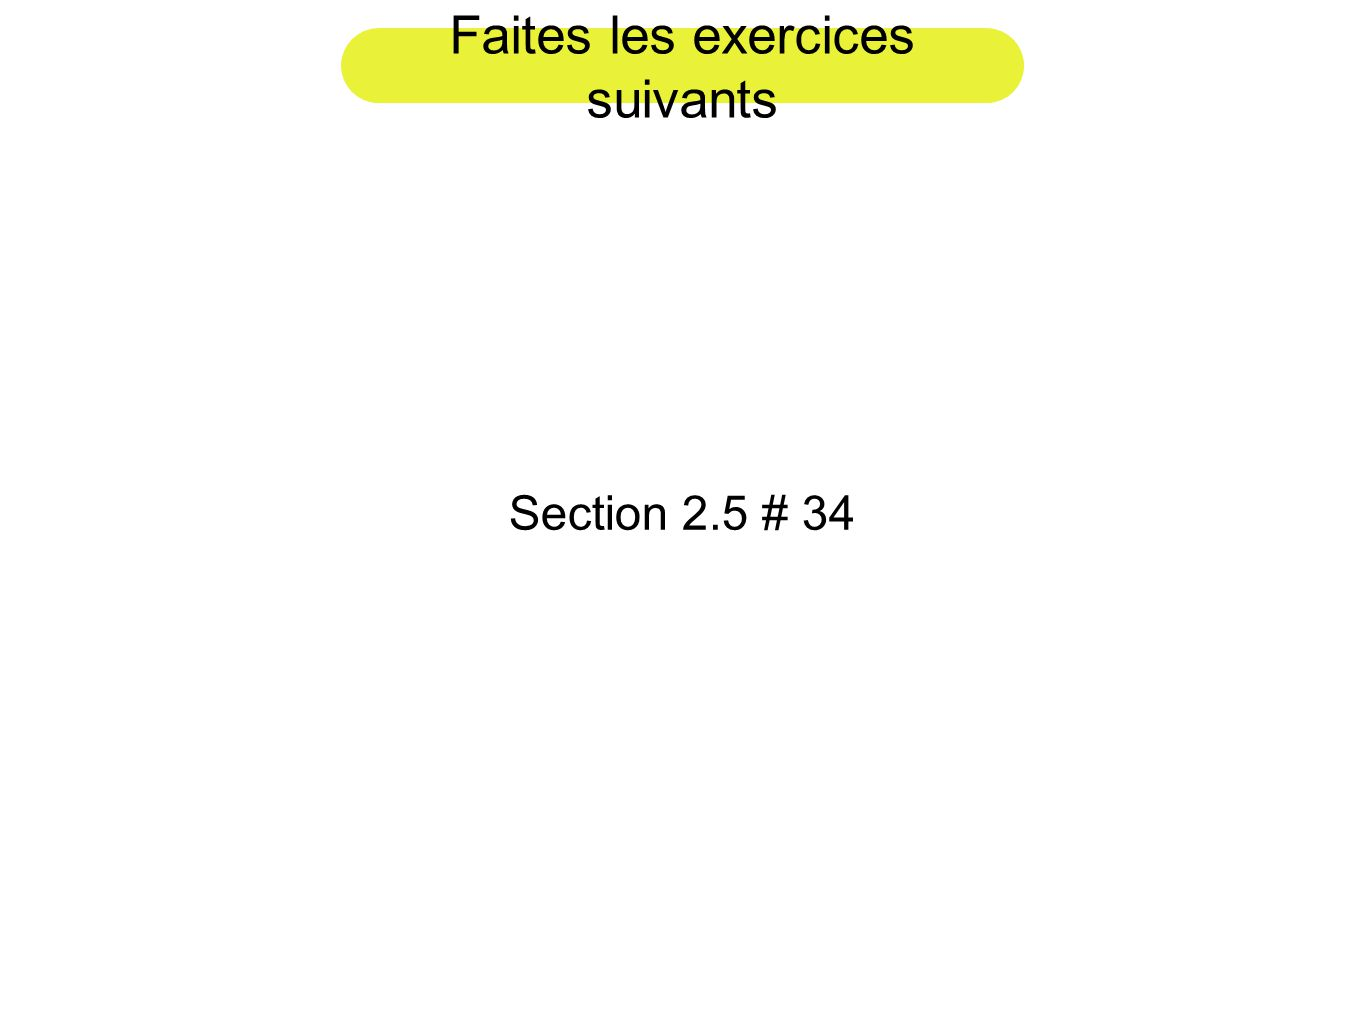 Faites les exercices suivants Section 2.5 # 34